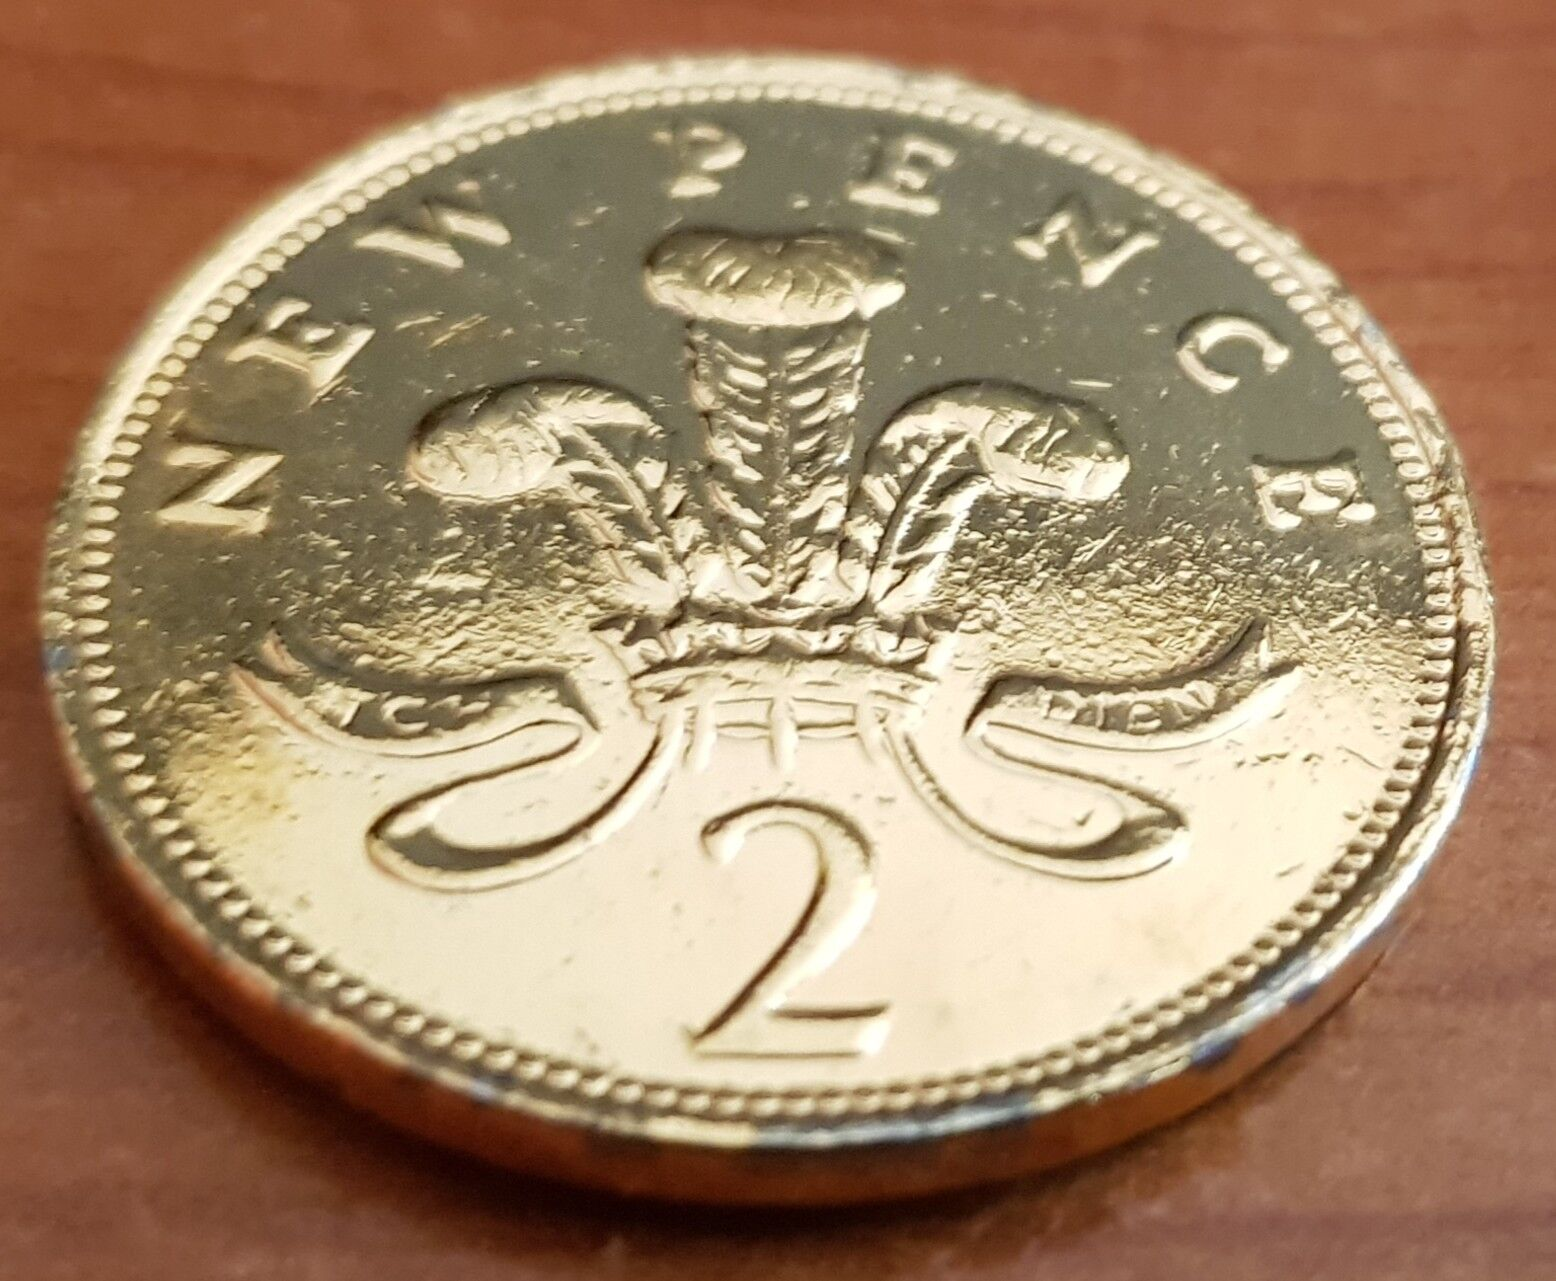 Two Pence 1992, Coin from United Kingdom - Online Coin Club